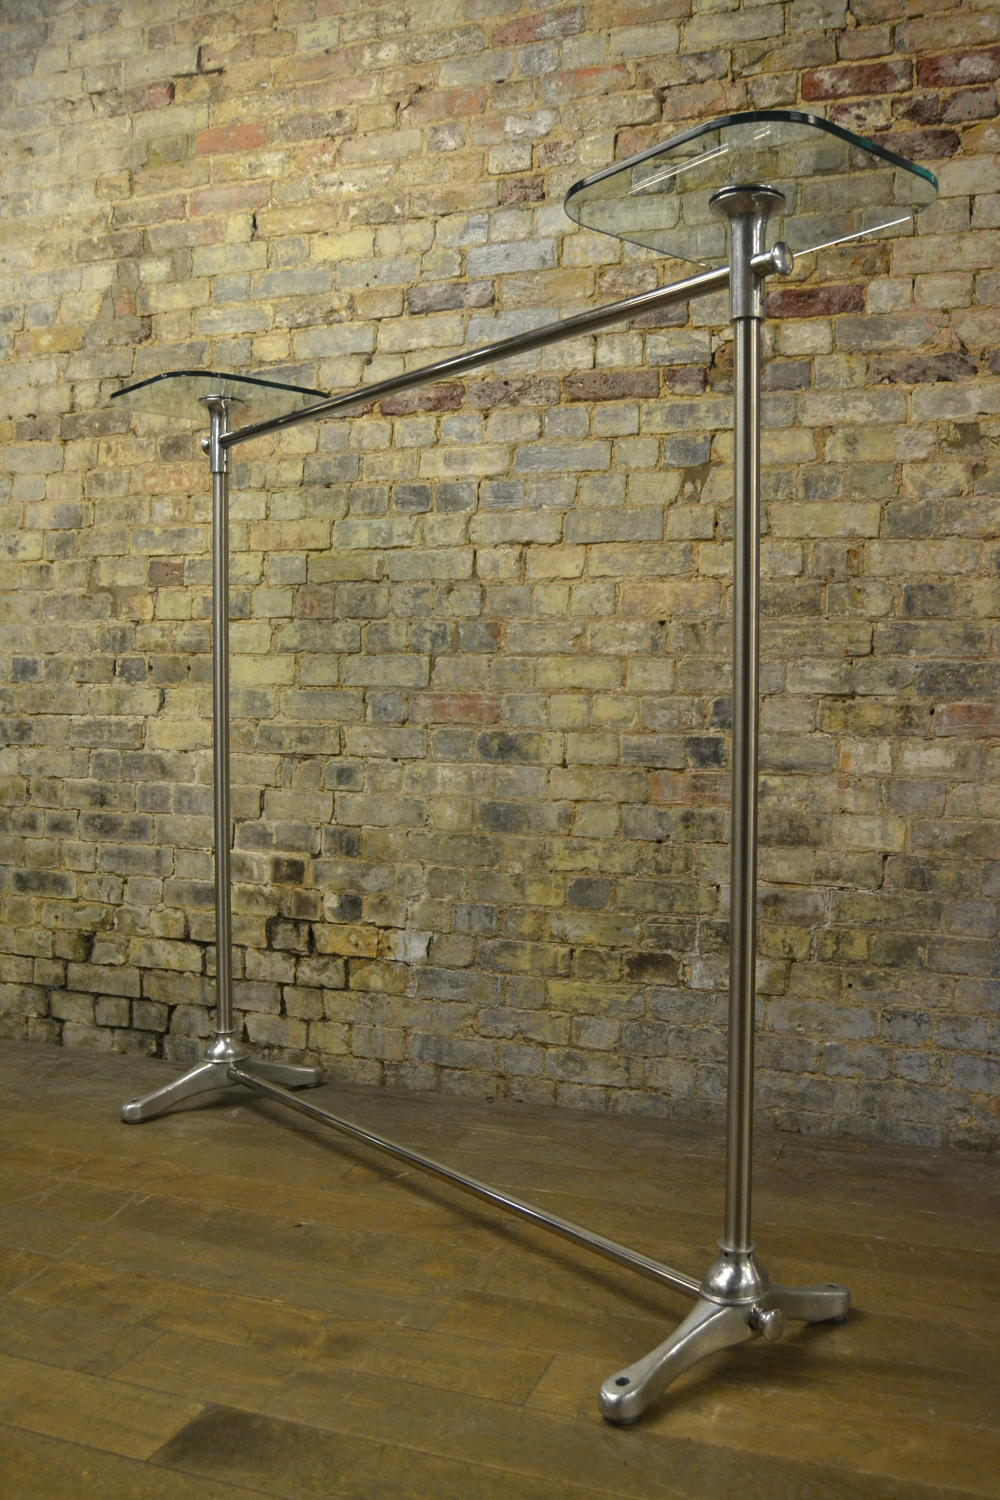 Chrome Shop Display Rail by Nigel Coates